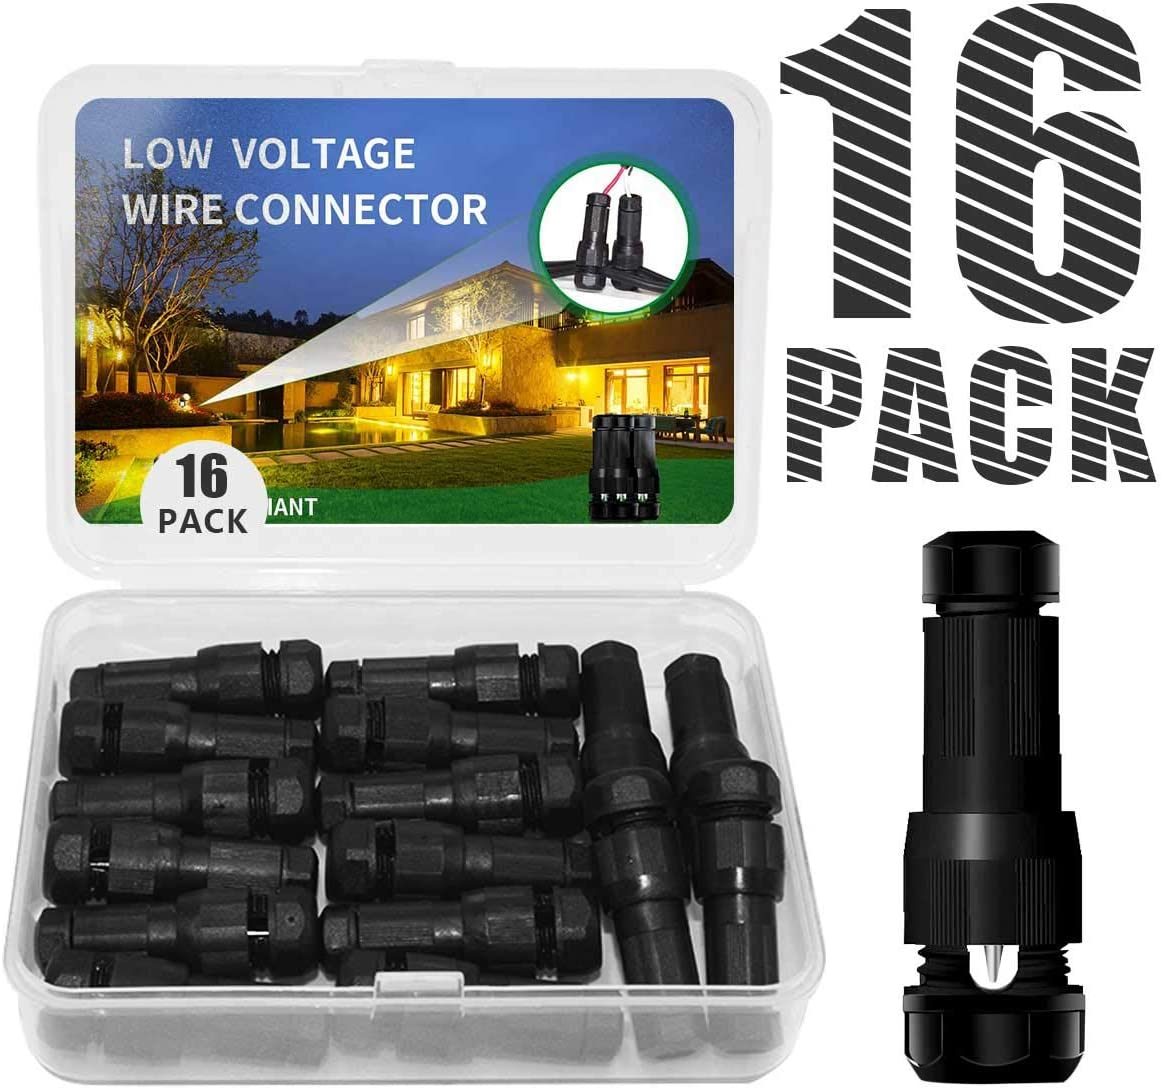 Hypergiant Fastlock Twist Low Voltage Wire Connector 16 Pack,landscape lighting connector For 12 14 16 Gauge Cable,outdoor lights connector for Garden Path Yard Lights Work for Malibu Paradise Moonray